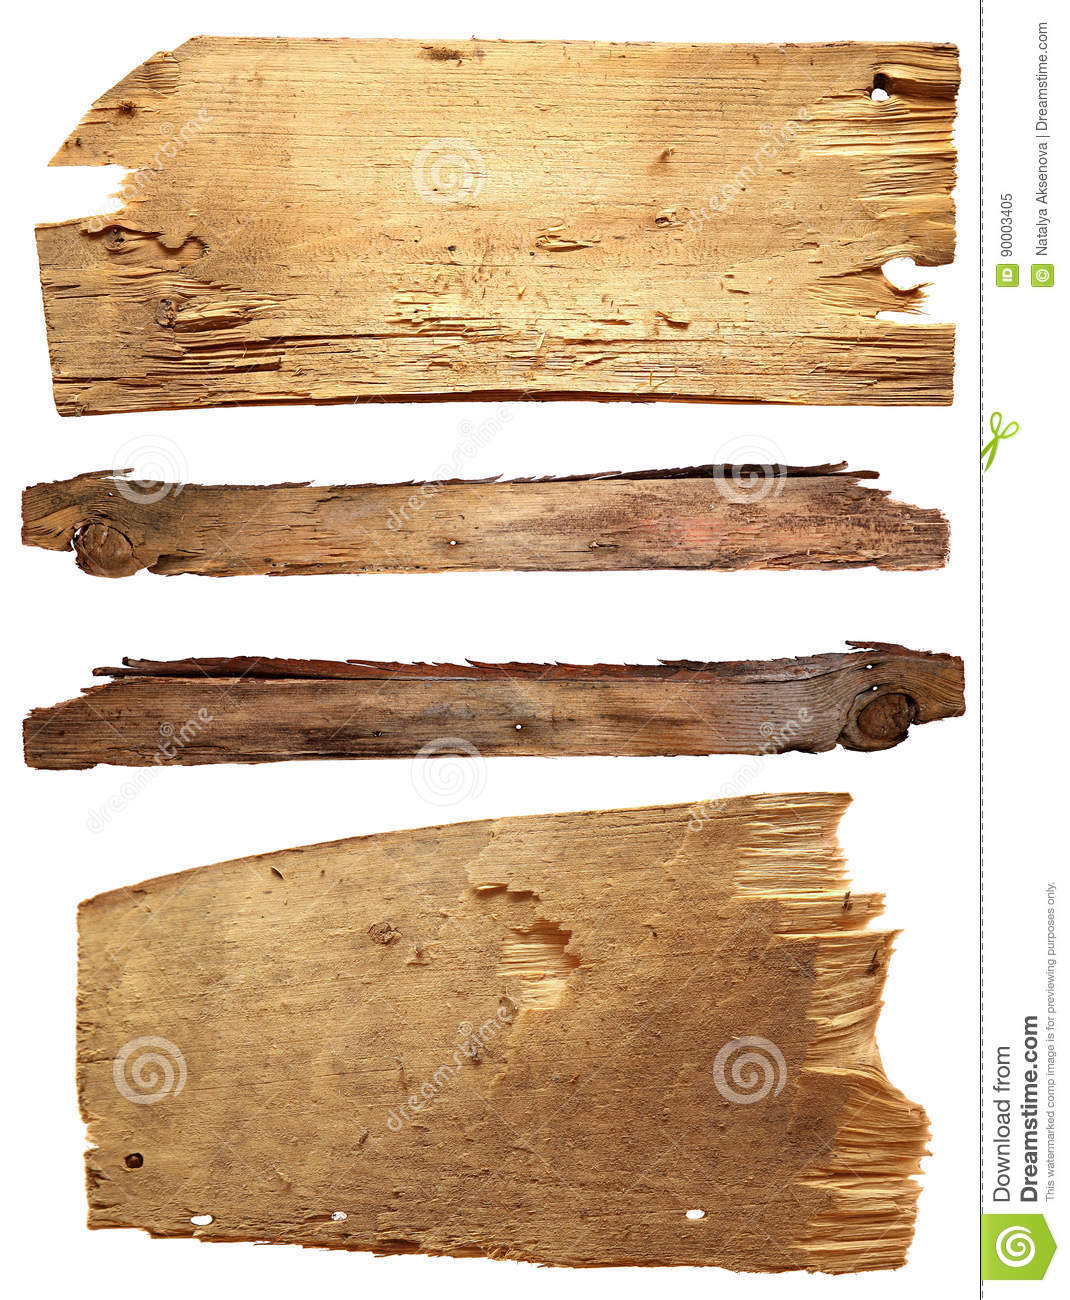 Download Four Old Wooden Boards Isolated On A White Background. Old Wood Plank Stock Image - Image of billboard, grunge: 90003405